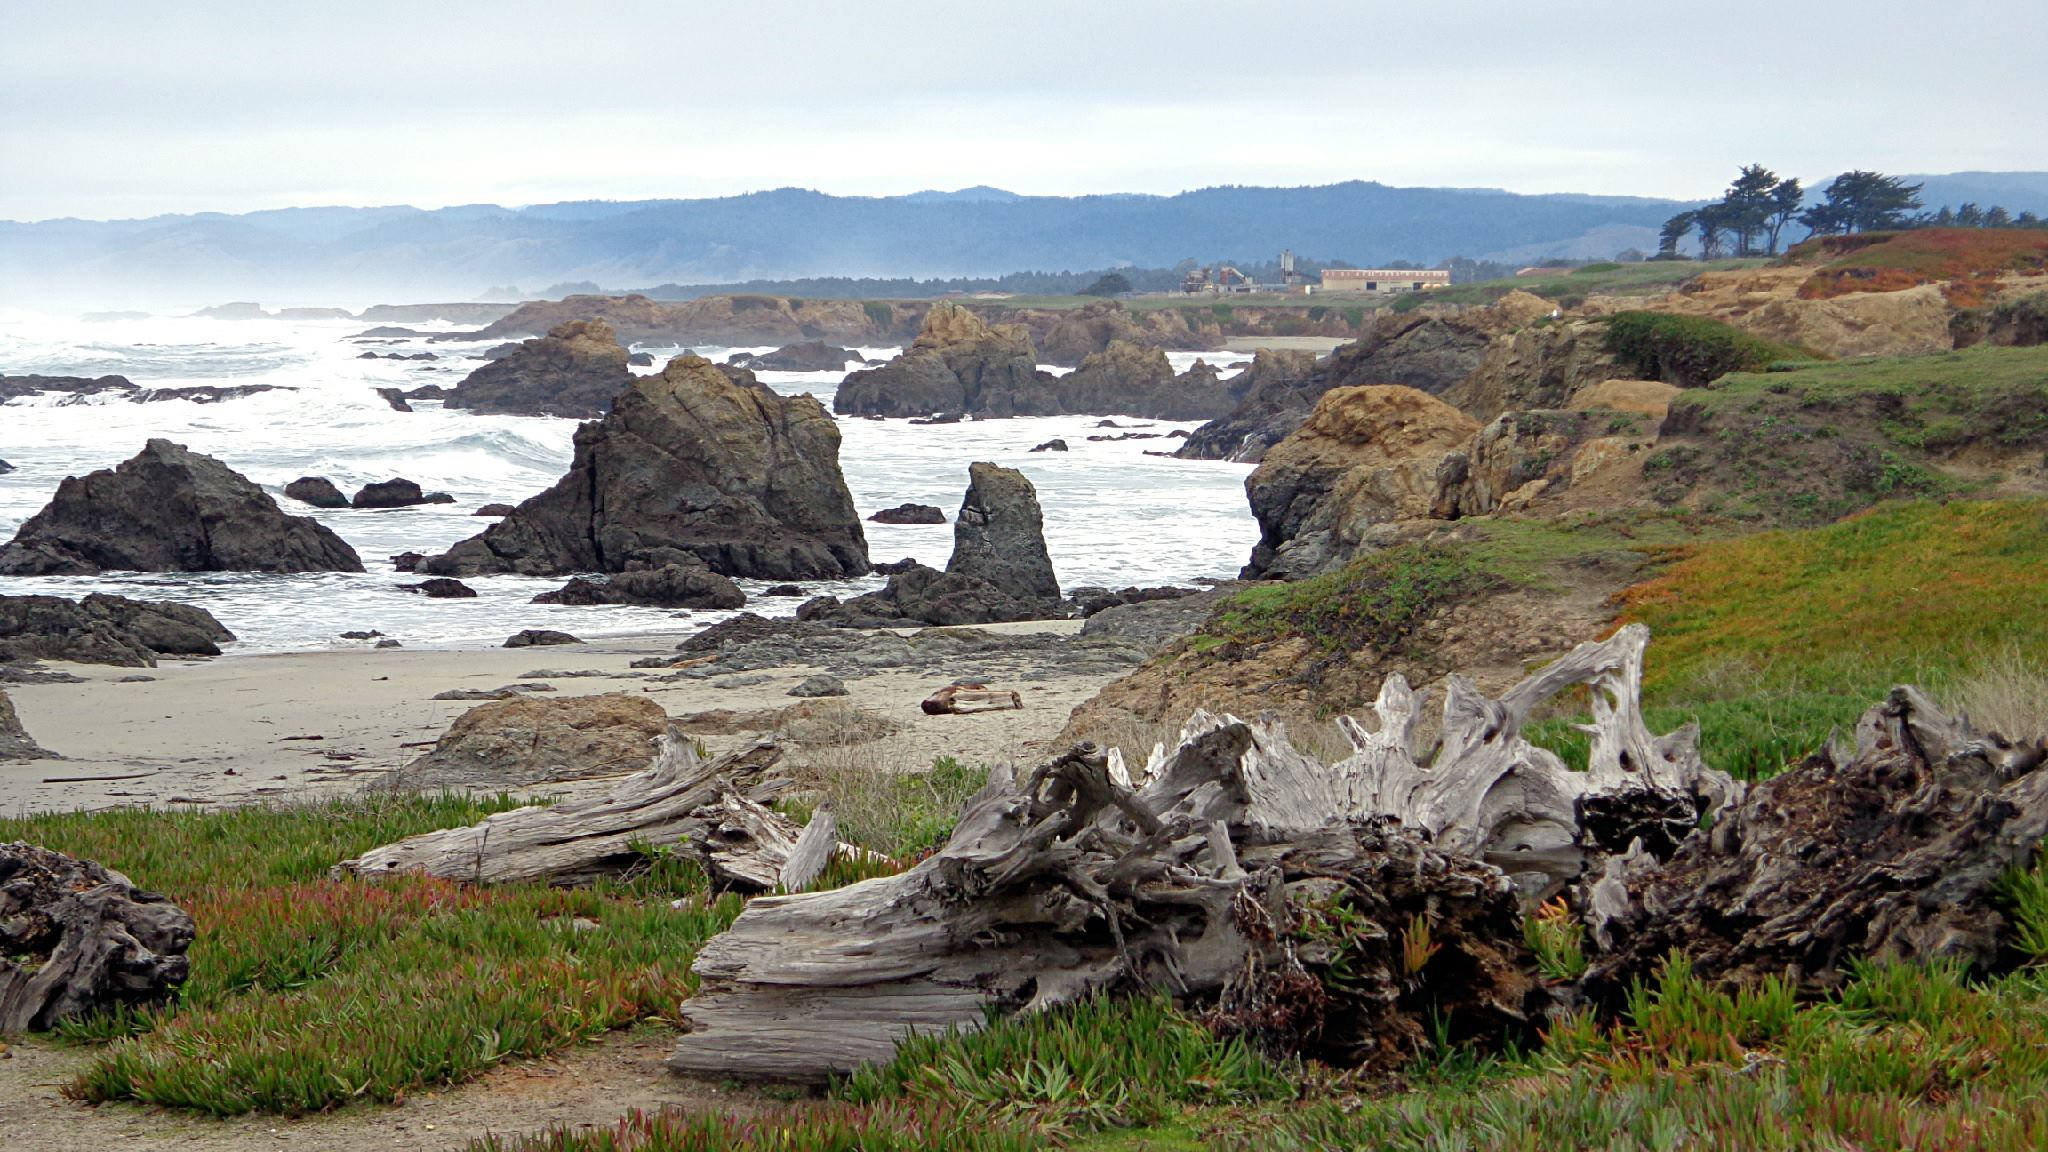 Beach by Fort Bragg